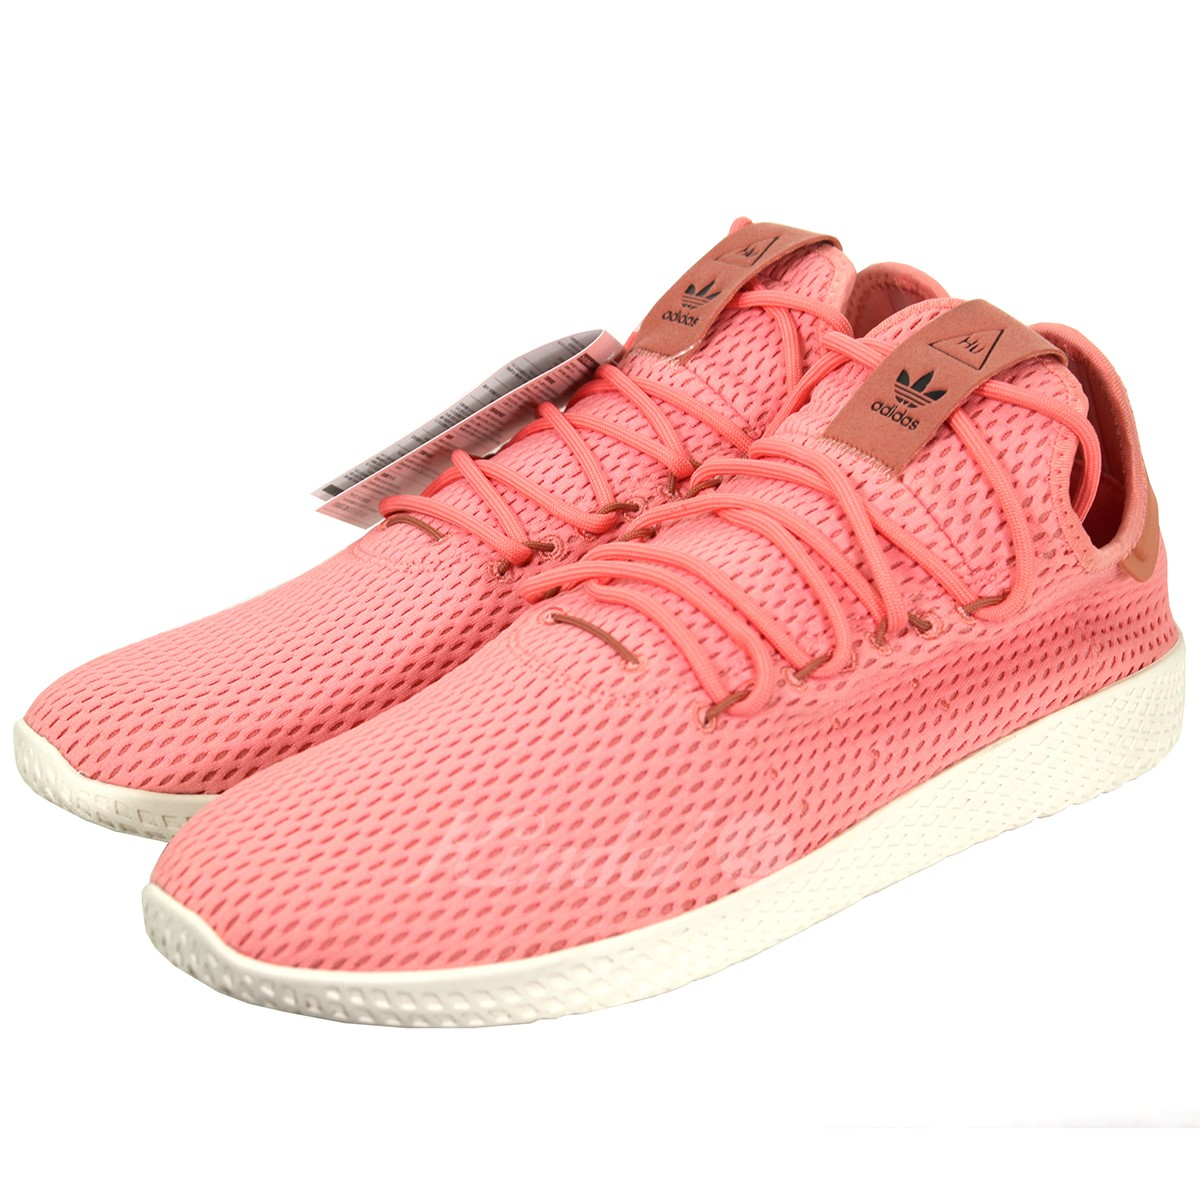 bf15d0bf5 adidas Originals PHARRELL WILLIAMS TENNIS HU PRIMEKNIT SHOES BY8715 pink  size  30cm (Adidas originals Farrell Williams)